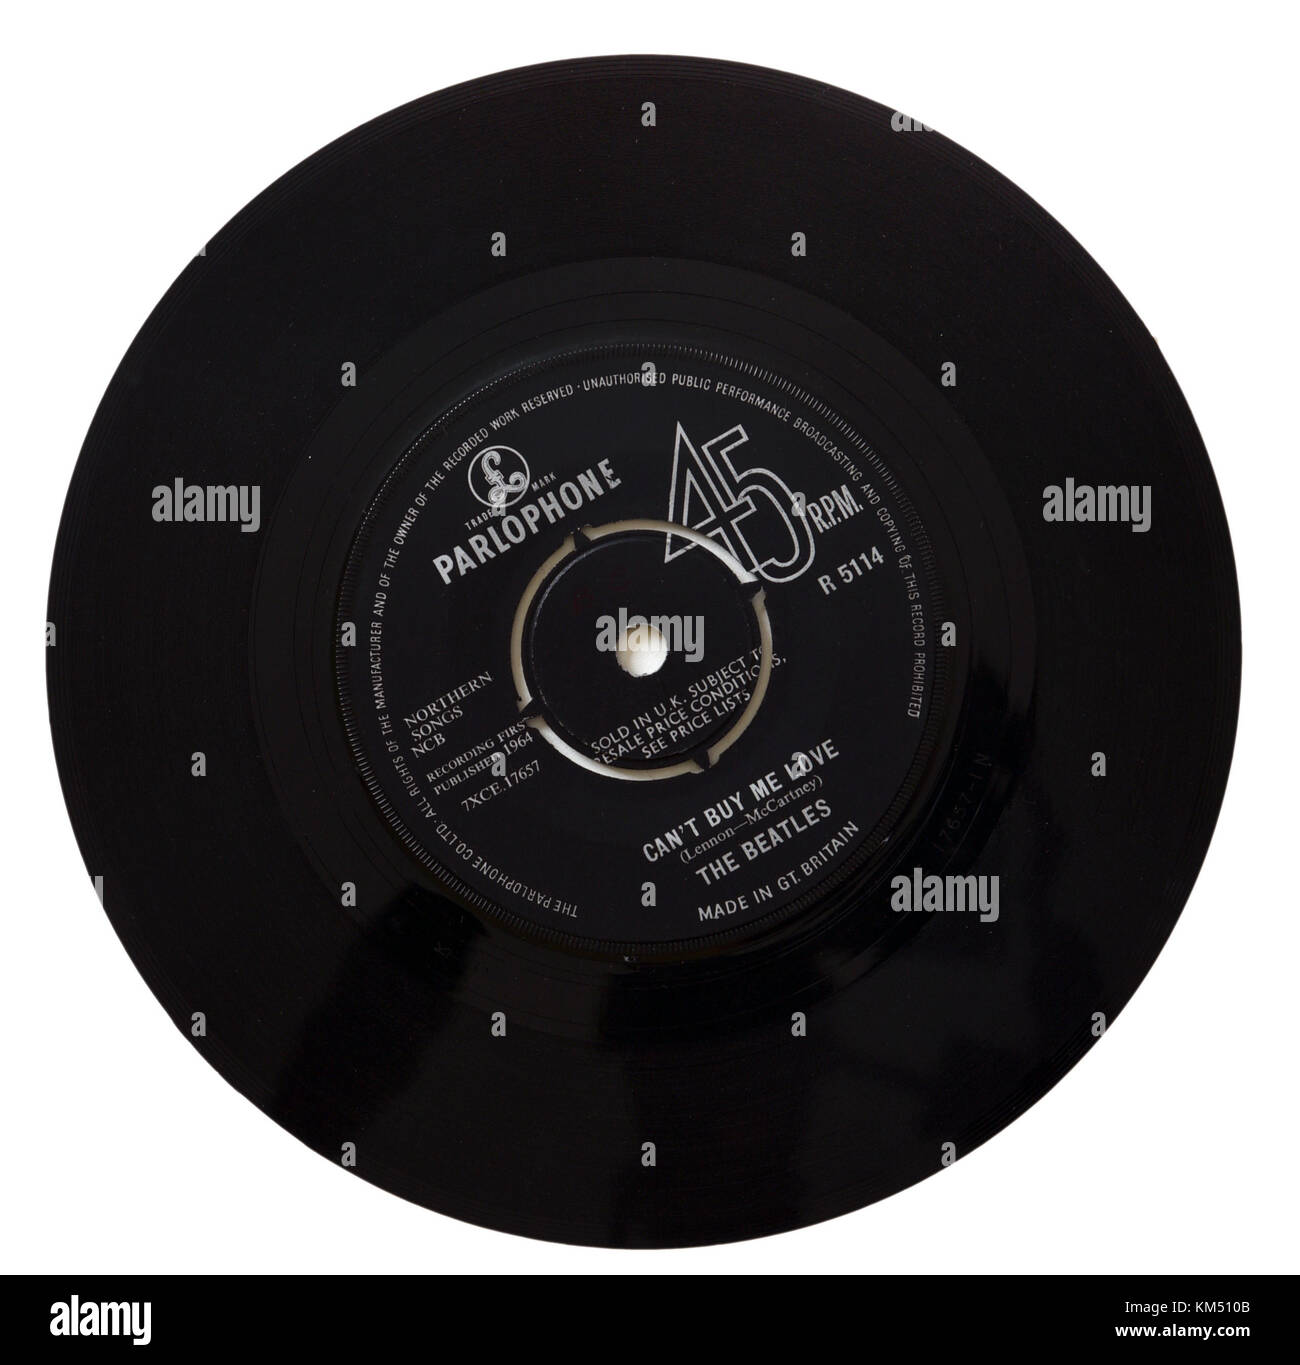 Beatles Can't Buy Me Love seven inch single - Stock Image